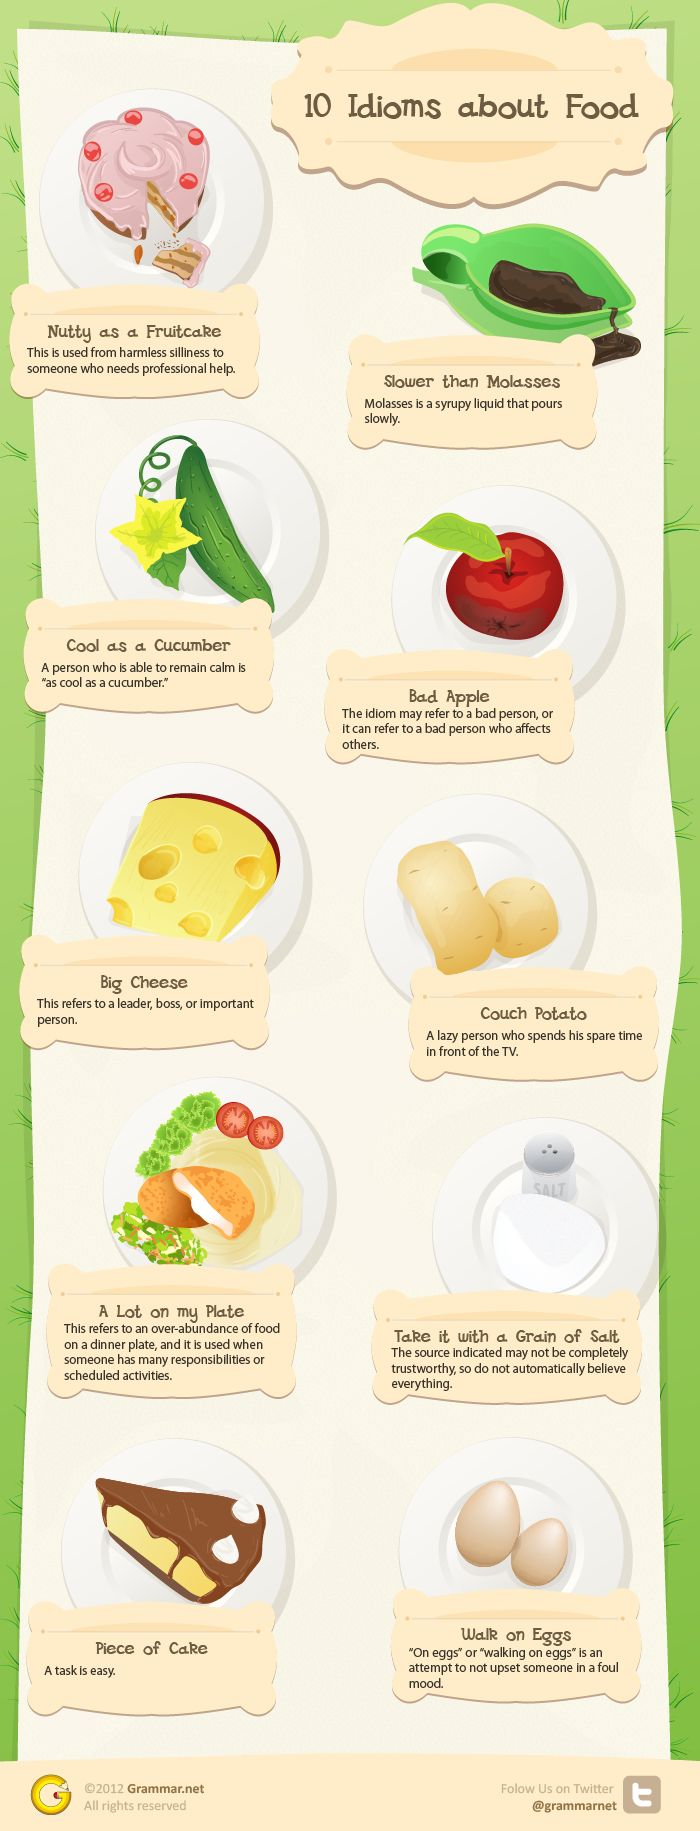 10 food idioms @Ami Long remind me to show kendall and deirdre! i think this would be great for WoM.